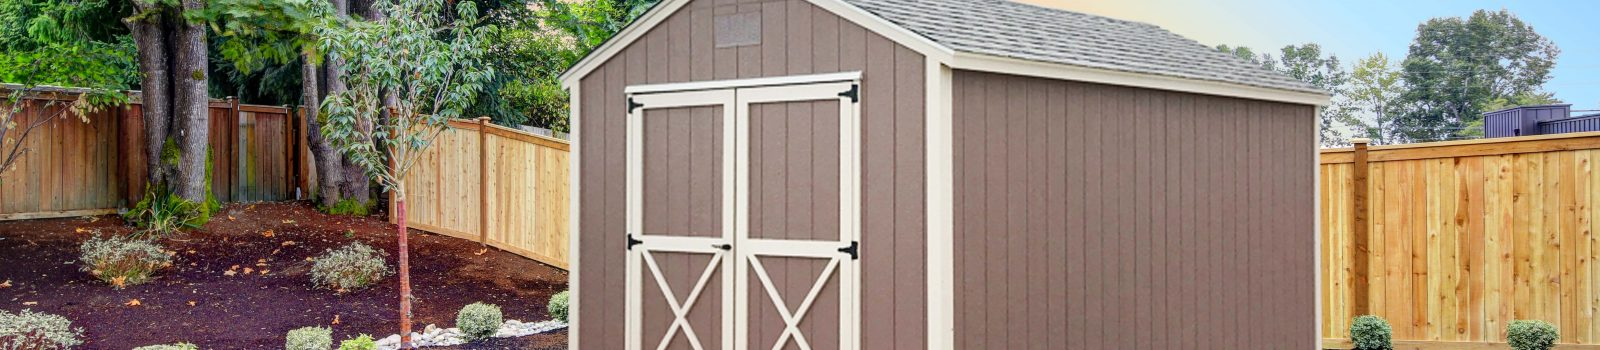 macon ga portable storage buildings utility shed